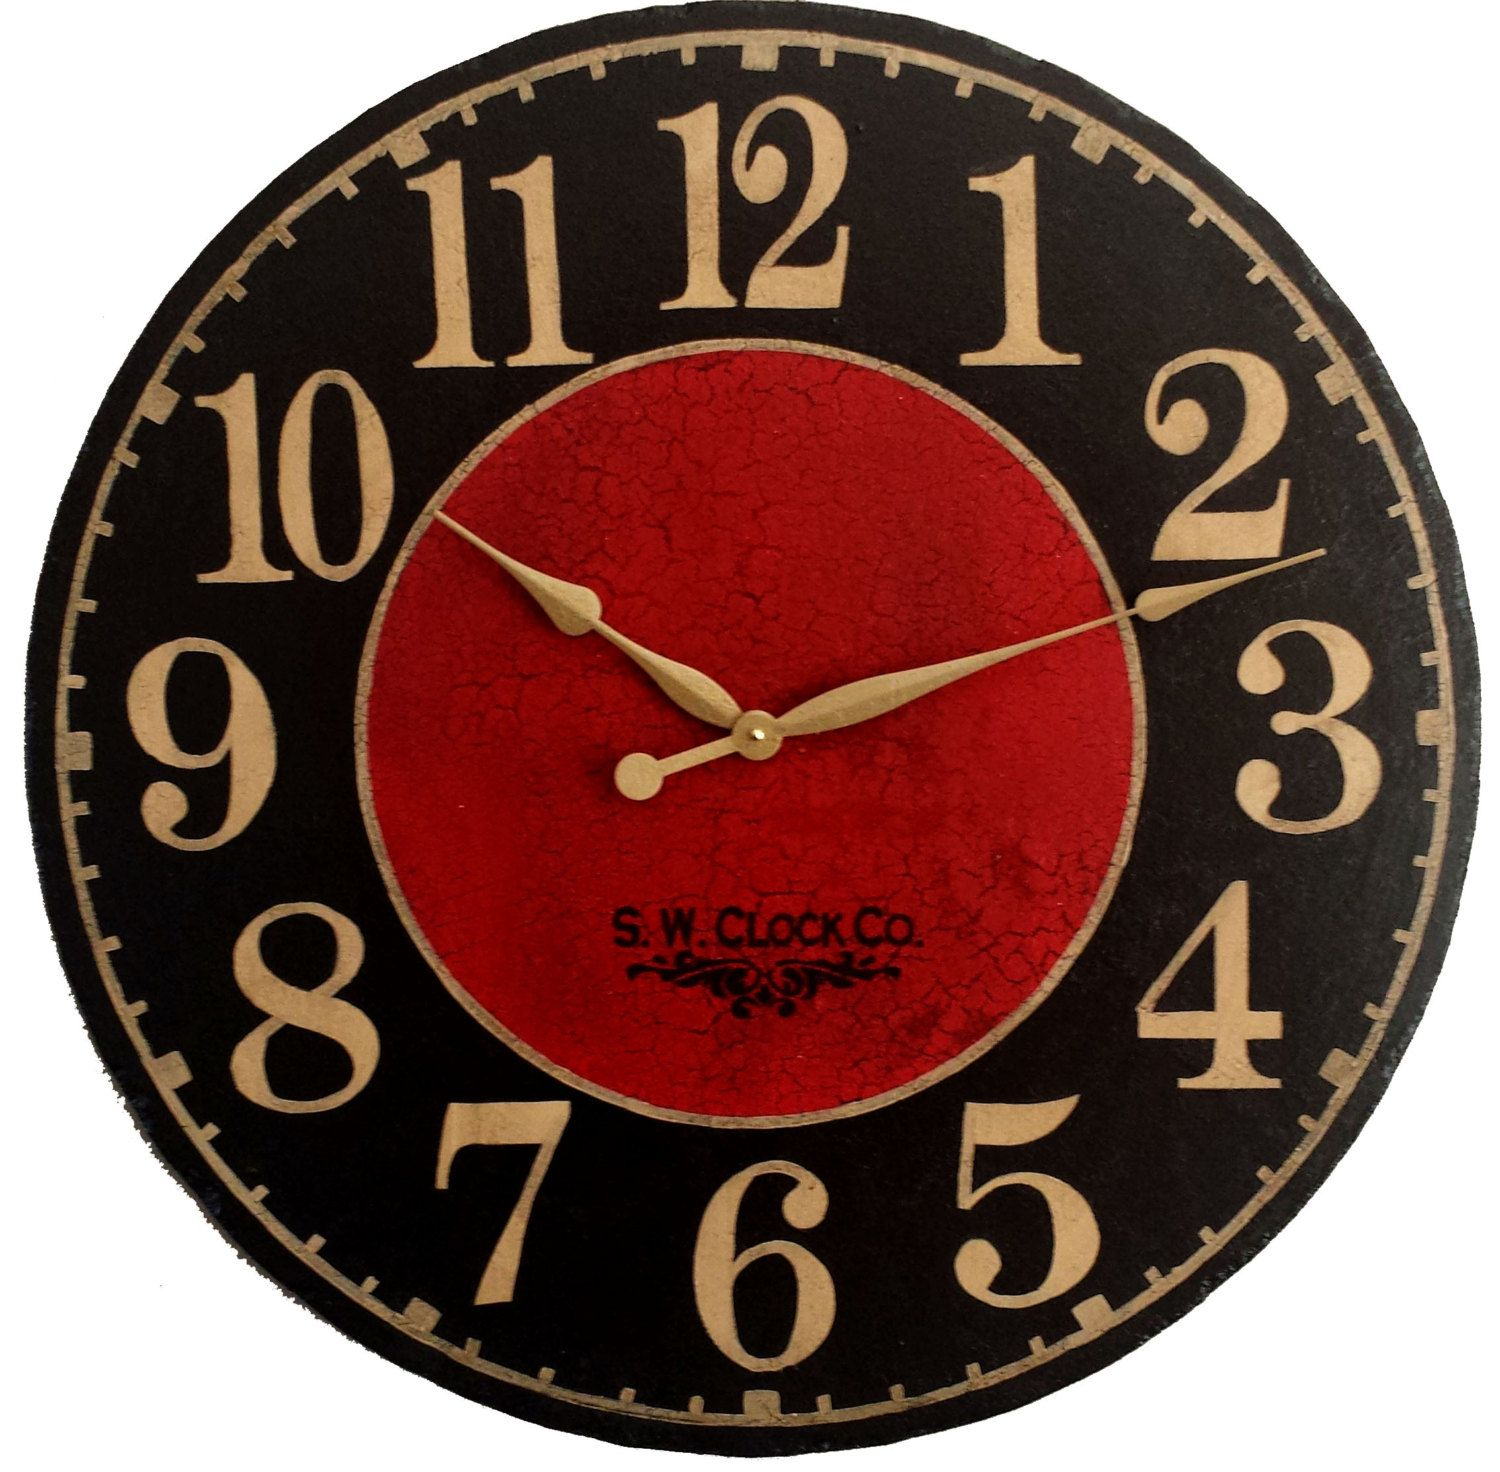 24 inch devonshire large wall clock antique style red by klocktime 24 inch devonshire large wall clock antique style red by klocktime marseille round dark black regular amipublicfo Gallery